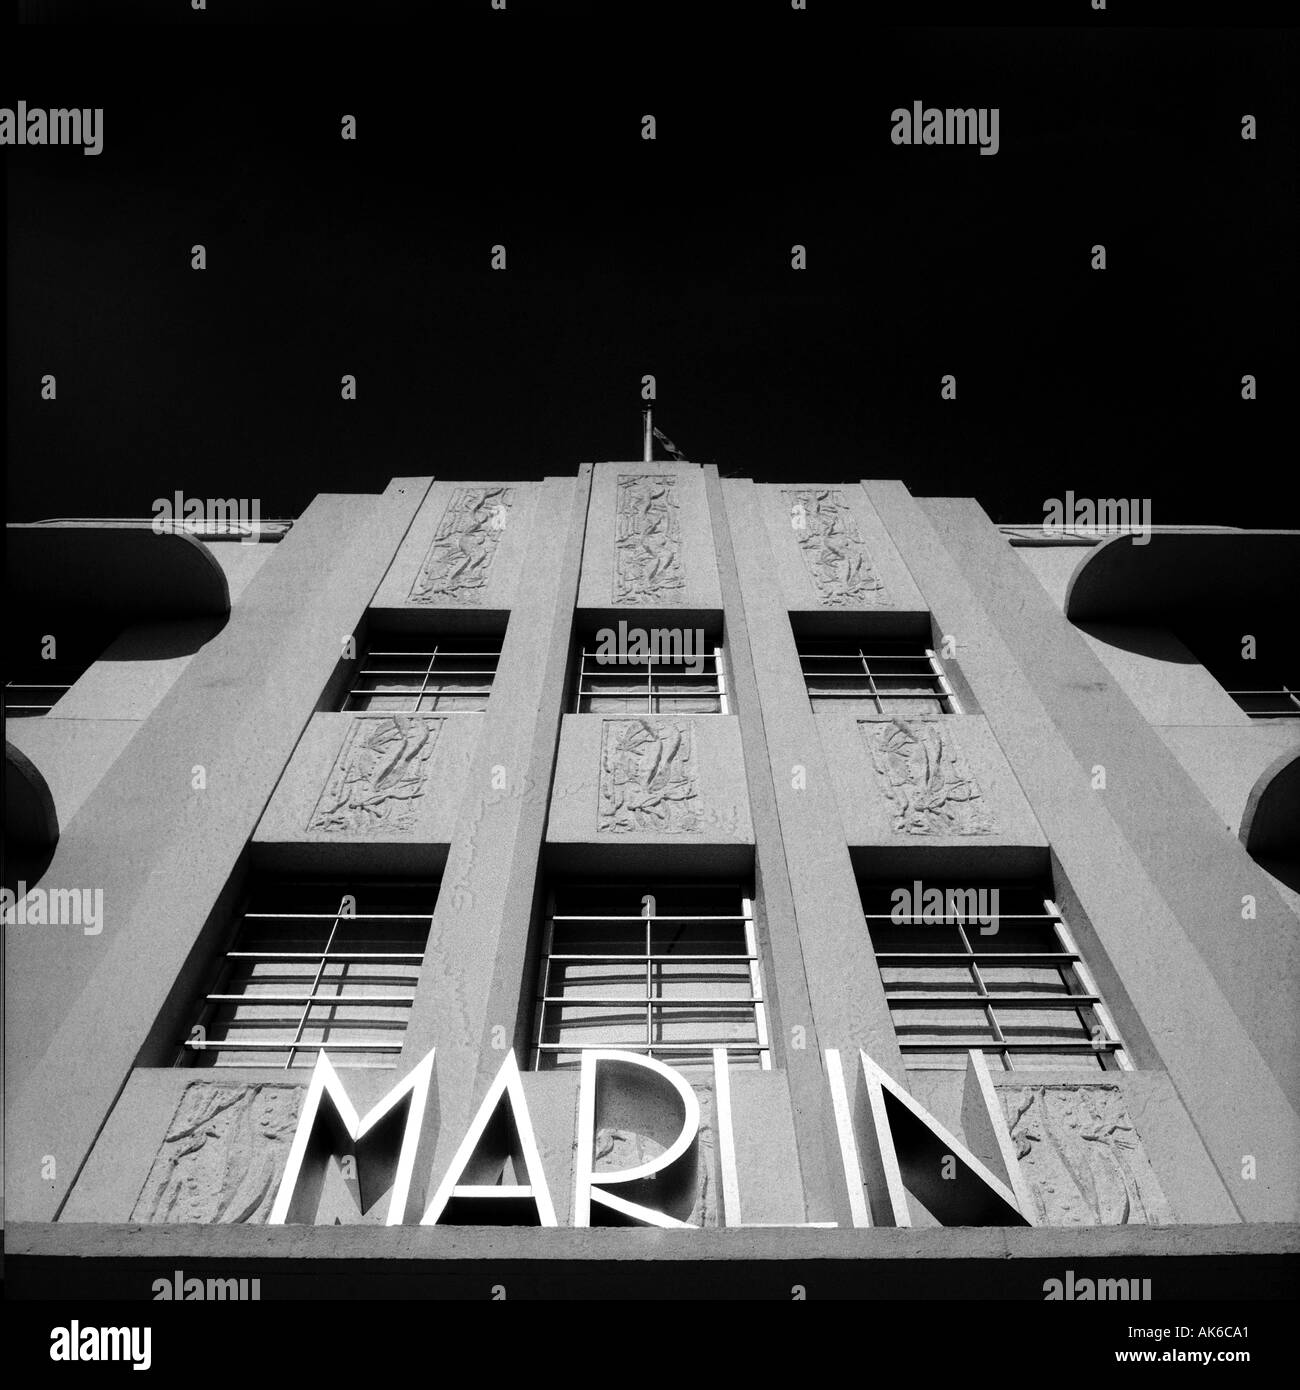 Fassade des Hotels Marlin in s Miami South Beach Art Deco District Stockfoto